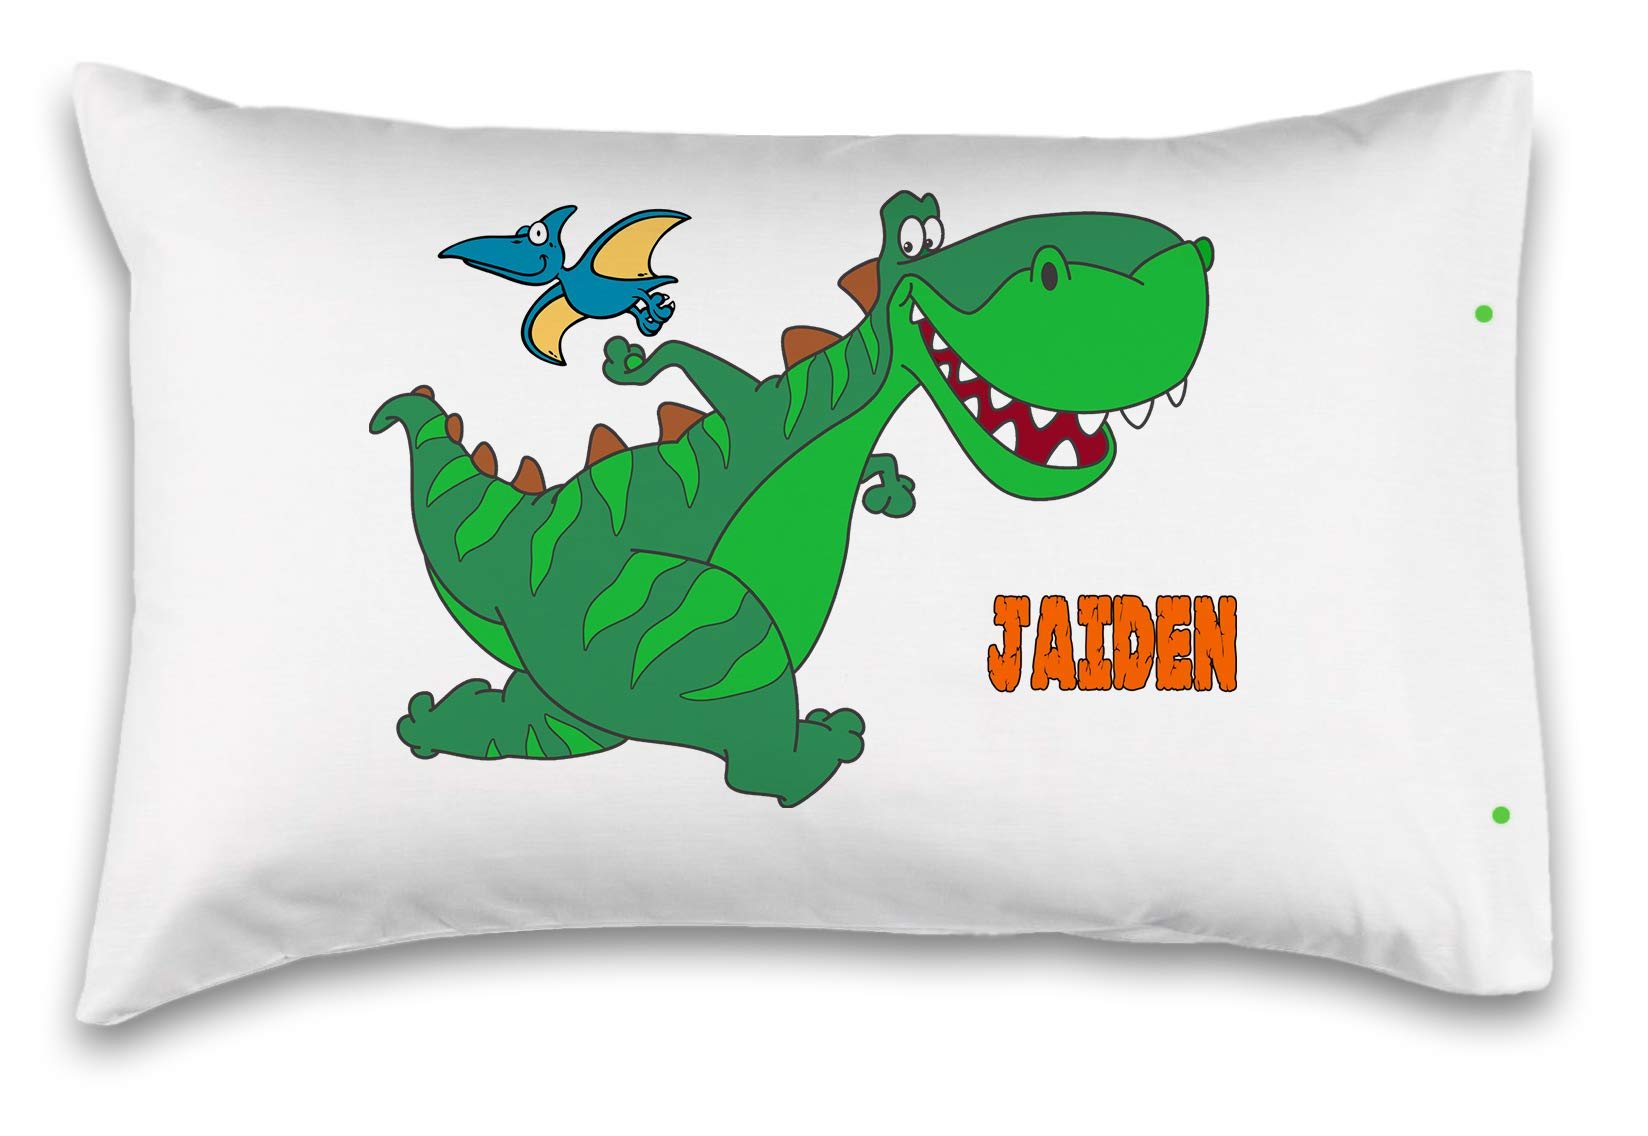 Kids Decorative Pillowcase,''GREEN DINOSAUR''. Personalized With Your Child's Name! - Perfect Custom Gift For Children Of All Ages! 100% Super Soft Microfiber! (Standard 20''X30'')